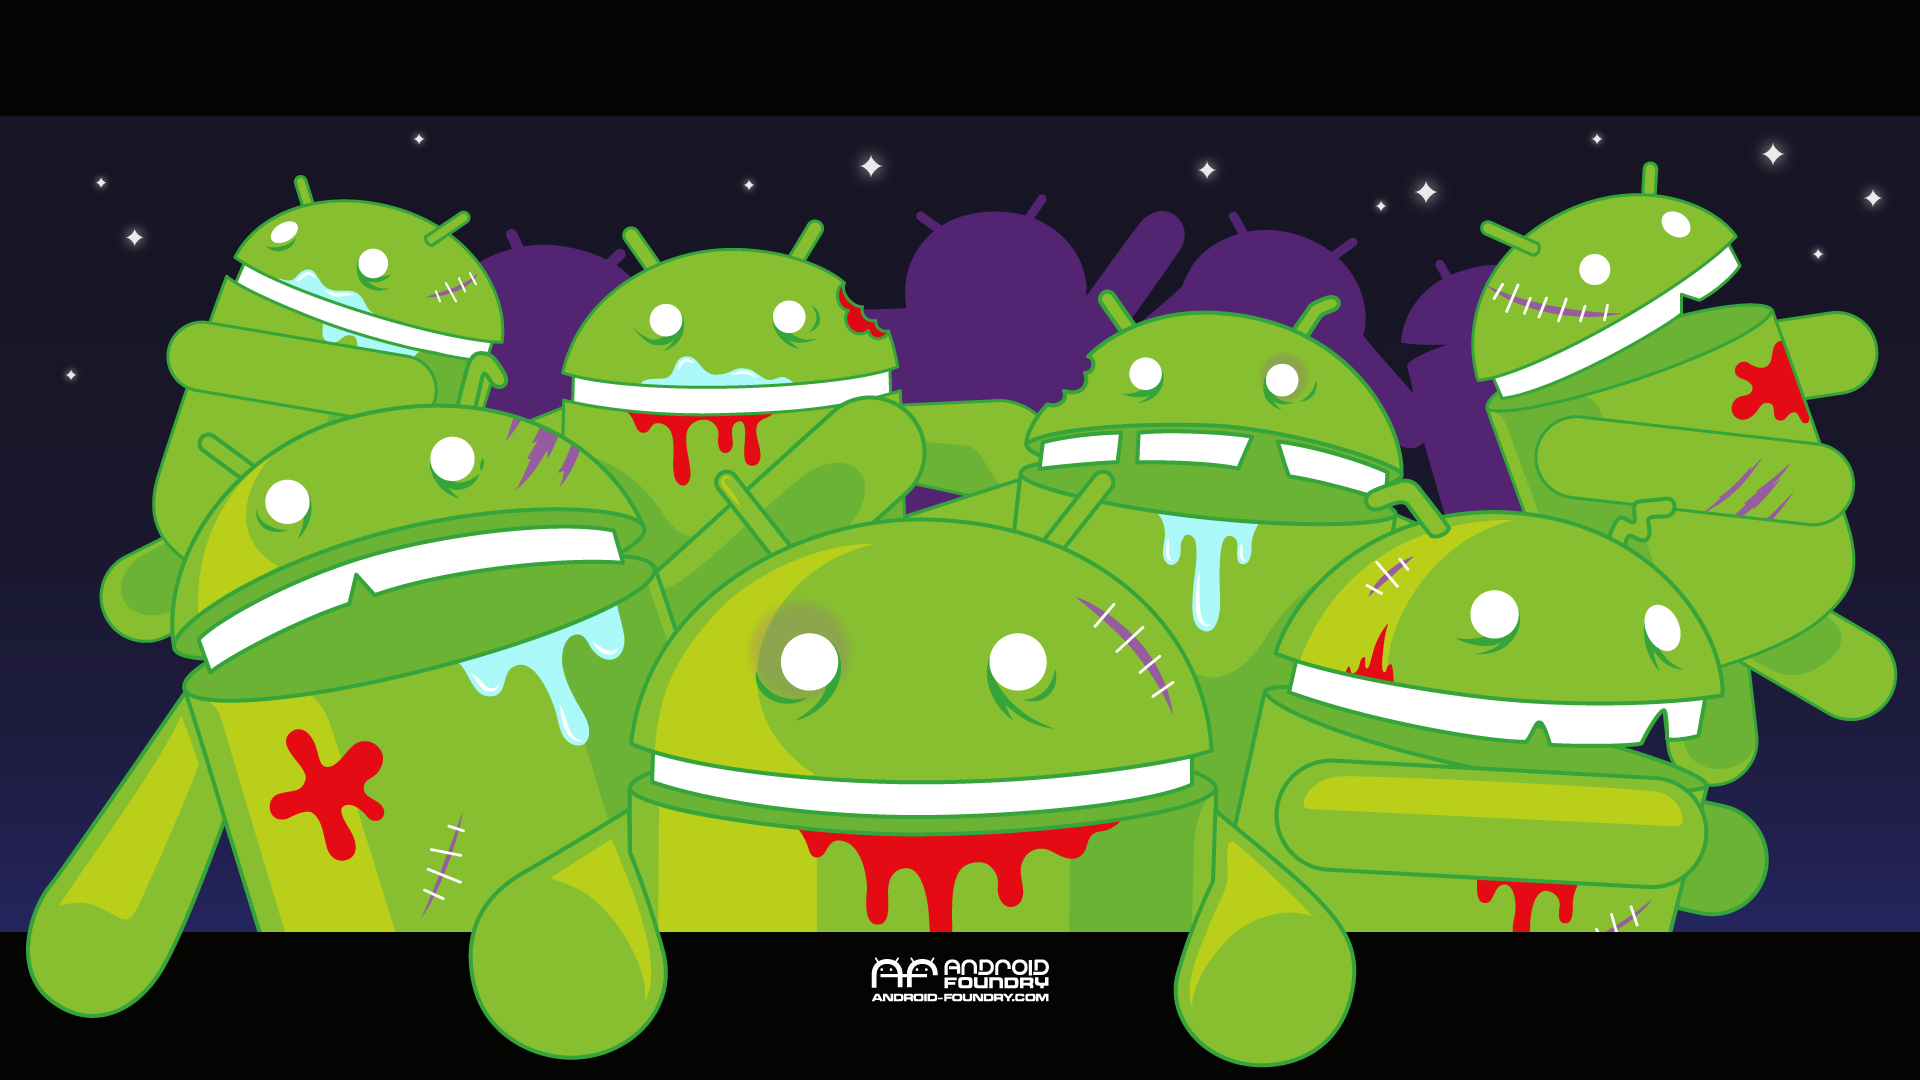 Wallpaper Android Foundry